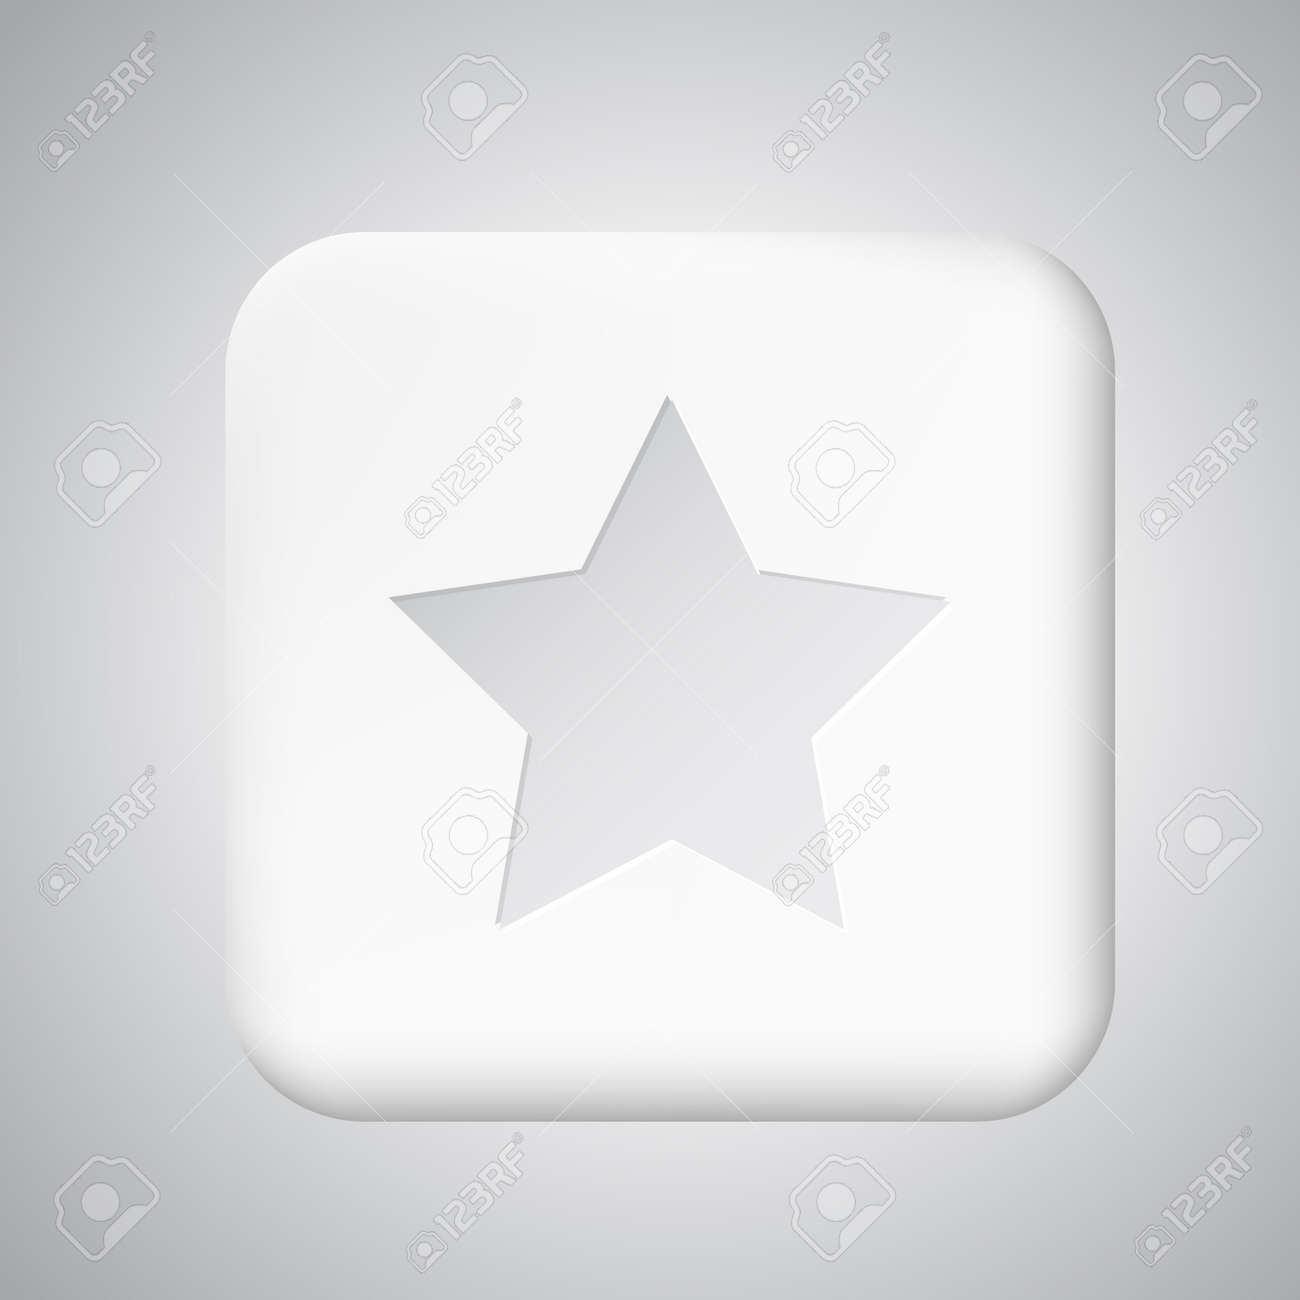 White plastic share button for app Stock Vector - 20724428